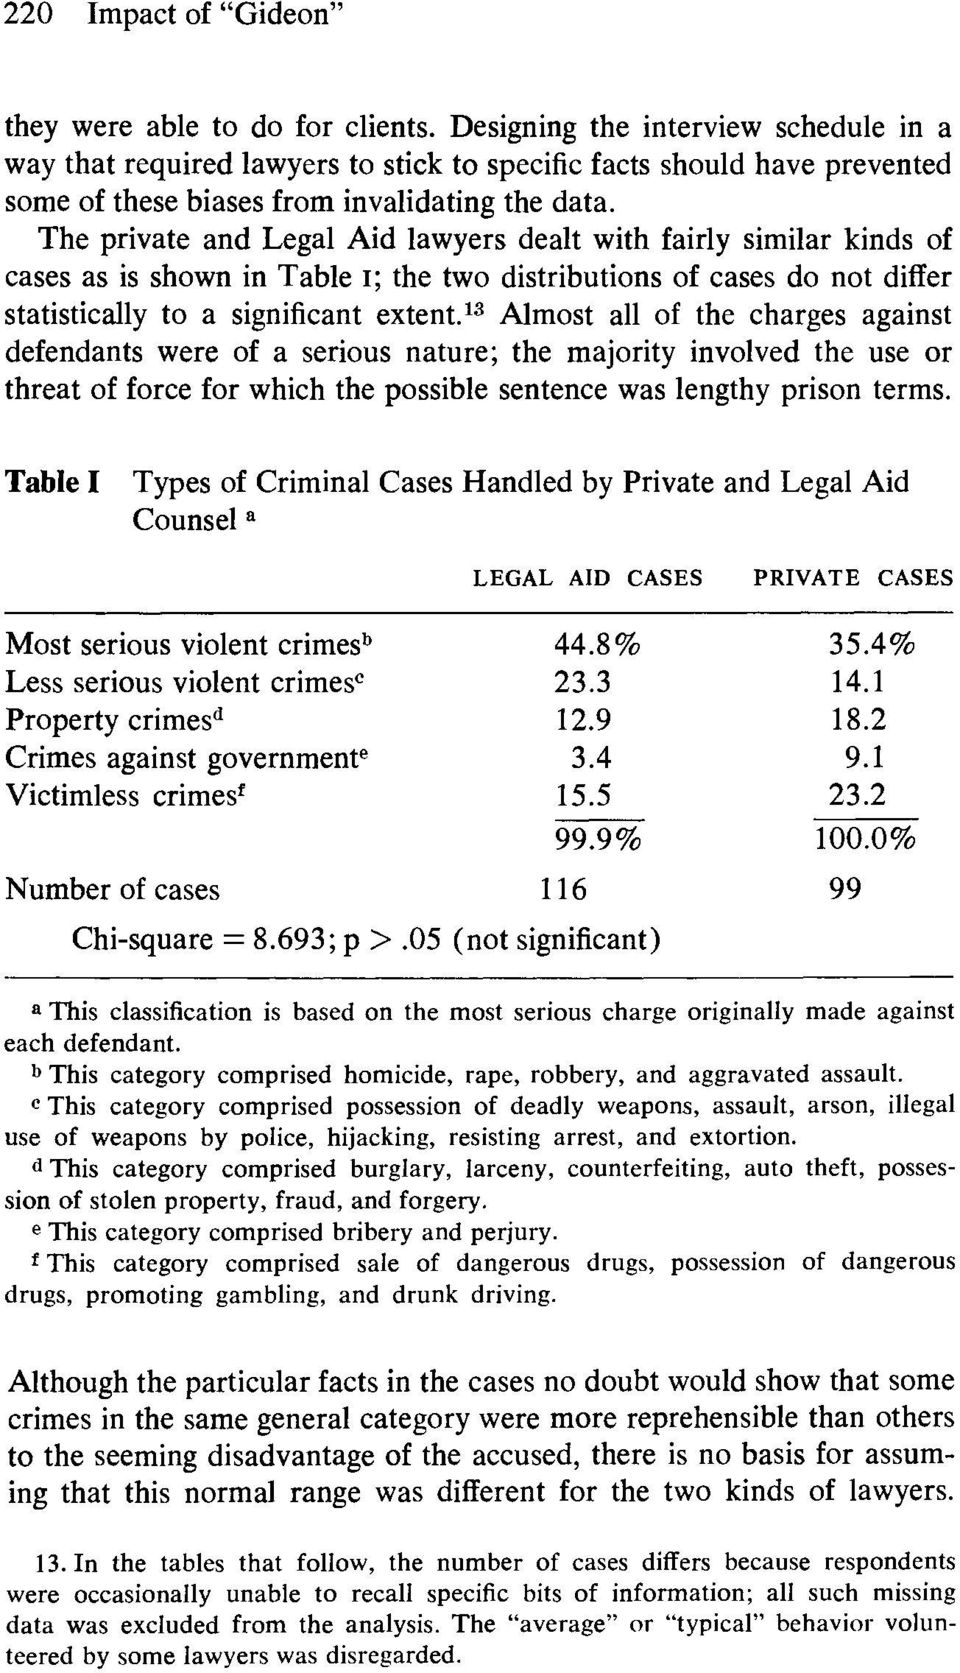 The private and Legal Aid lawyers dealt with fairly similar kinds of cases as is shown in Table I; the two distributions of cases do not differ statistically to a significant extent.